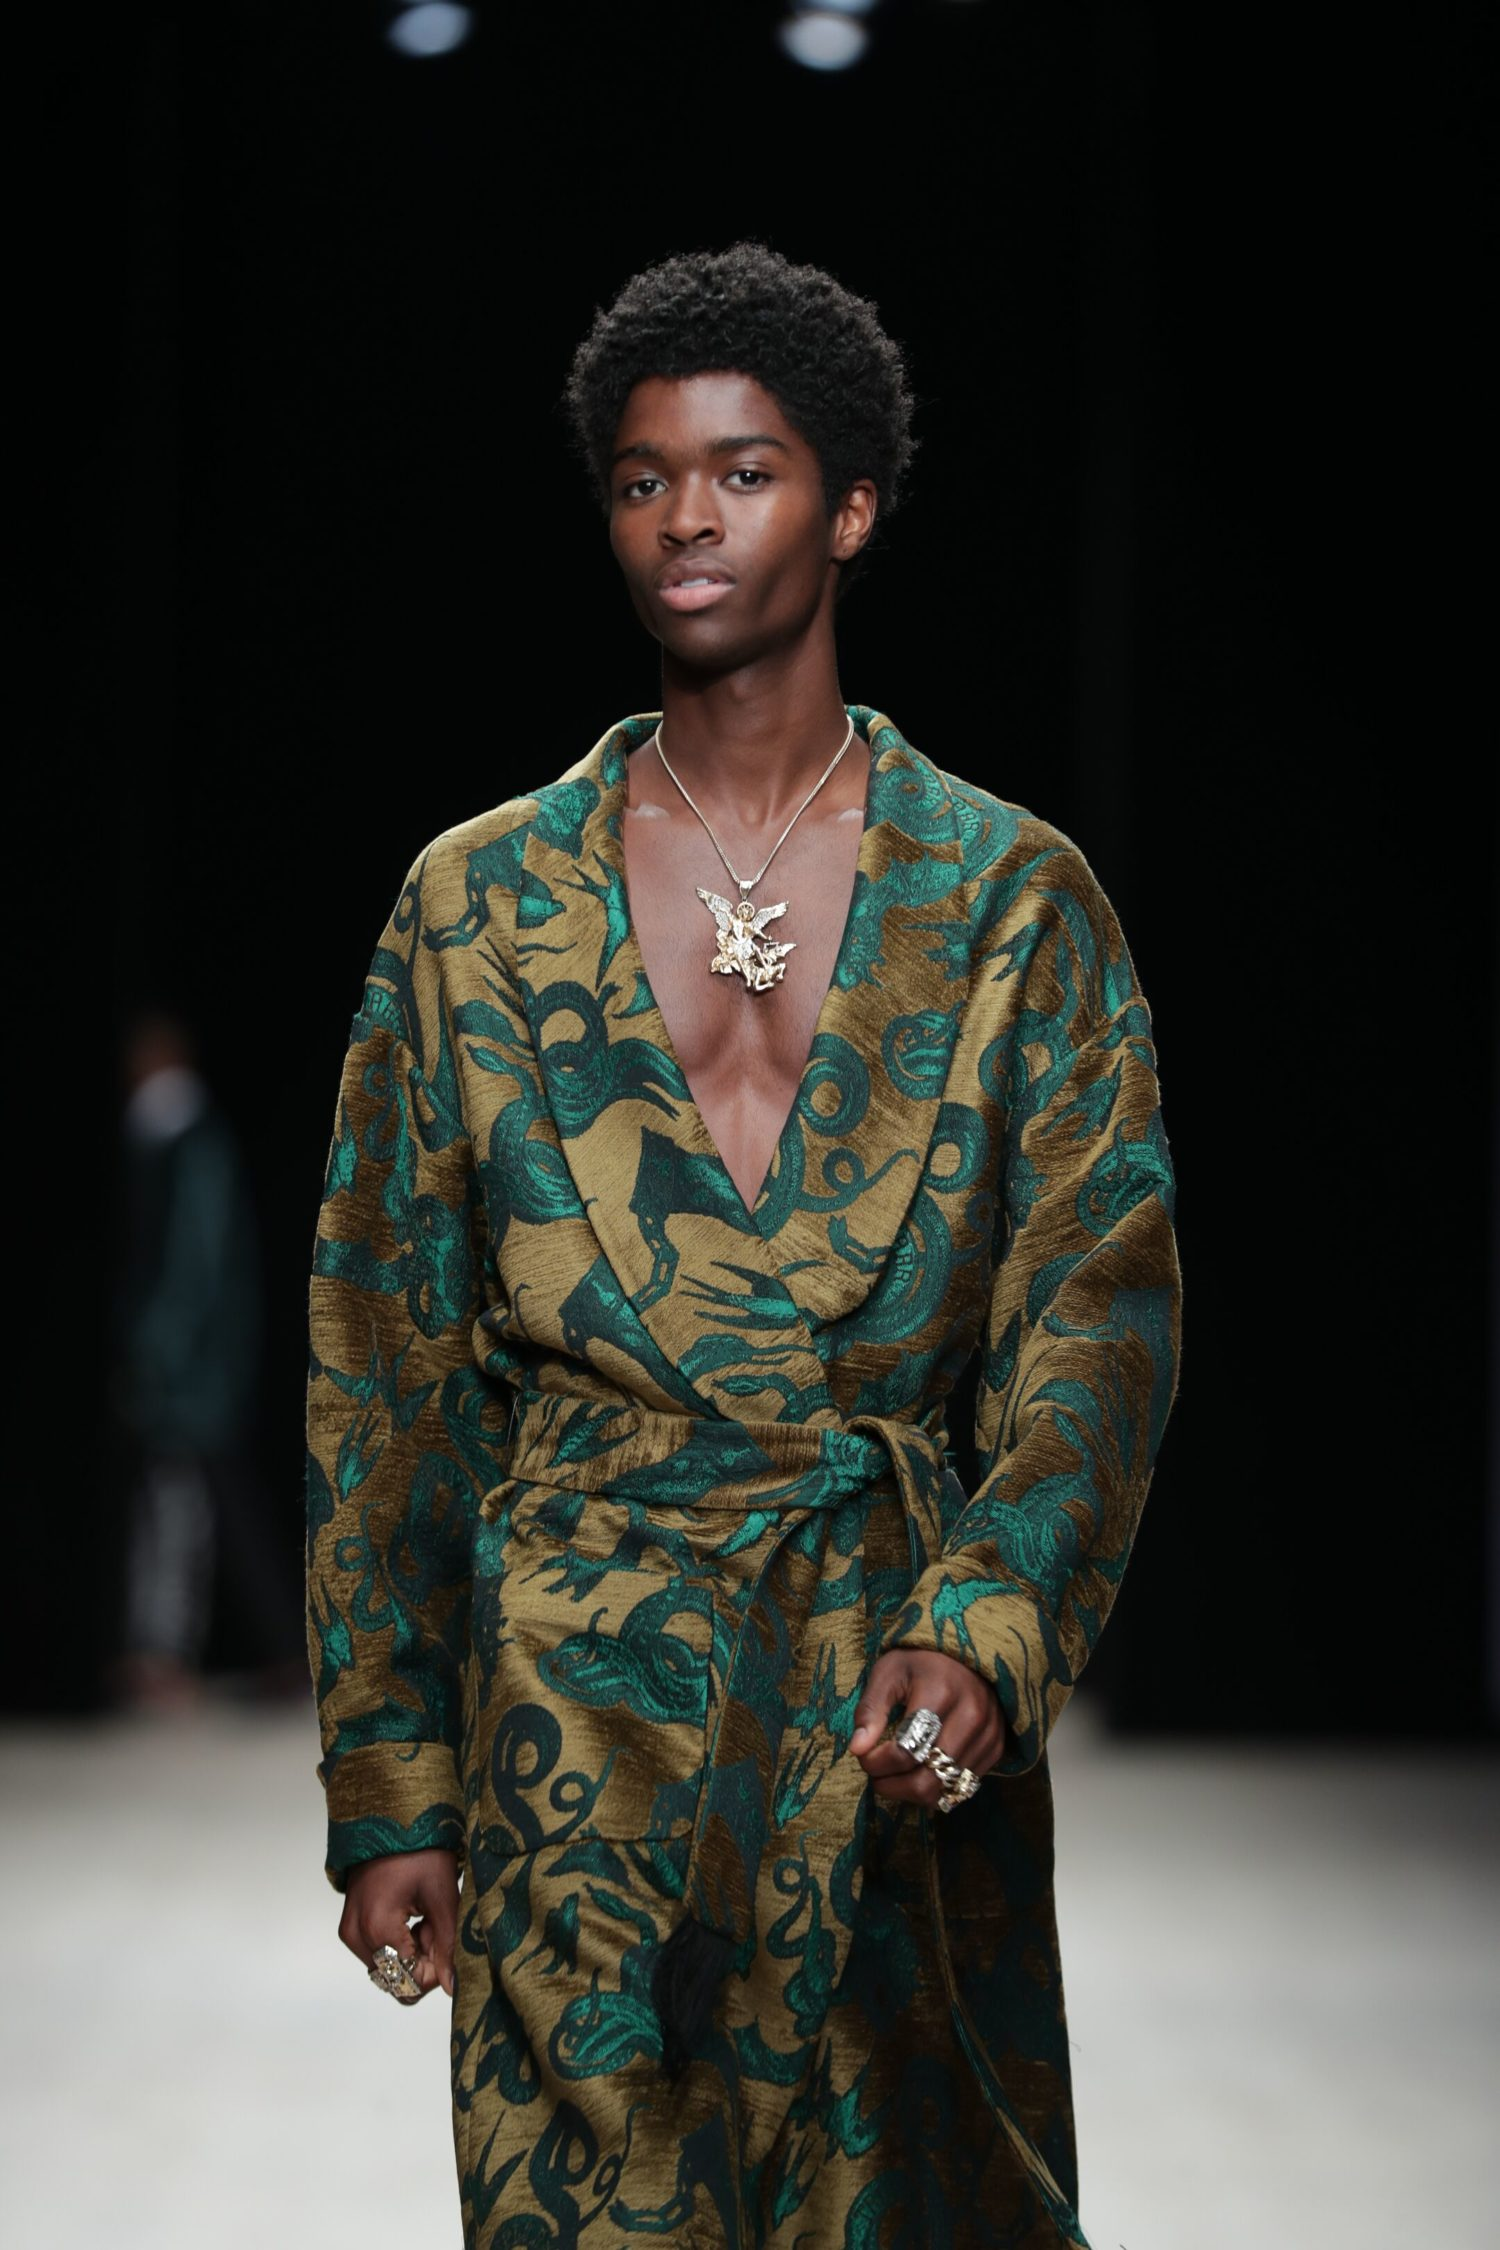 ARISE Fashion Week 2019 | Triple RRR By Robert Cavalli